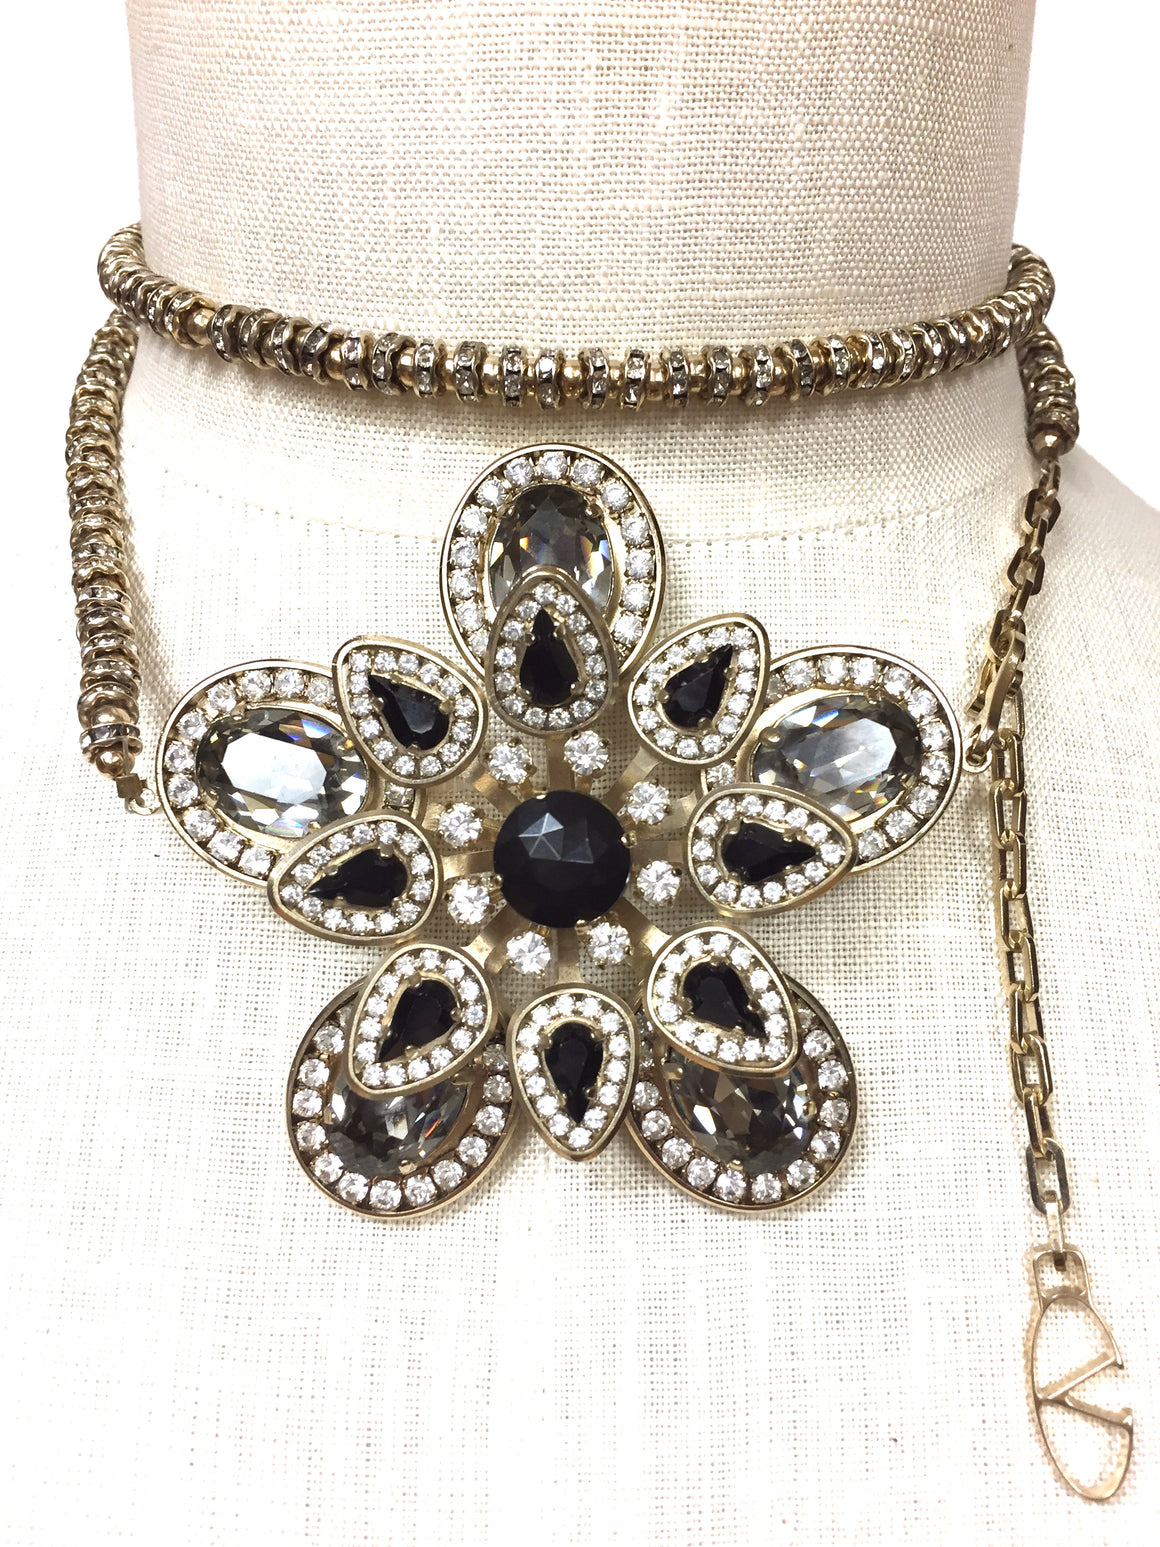 VALENTINO  Goldtone Crystal Roundels & Beads Statement Necklace/Belt with Large Jeweled Flower Center